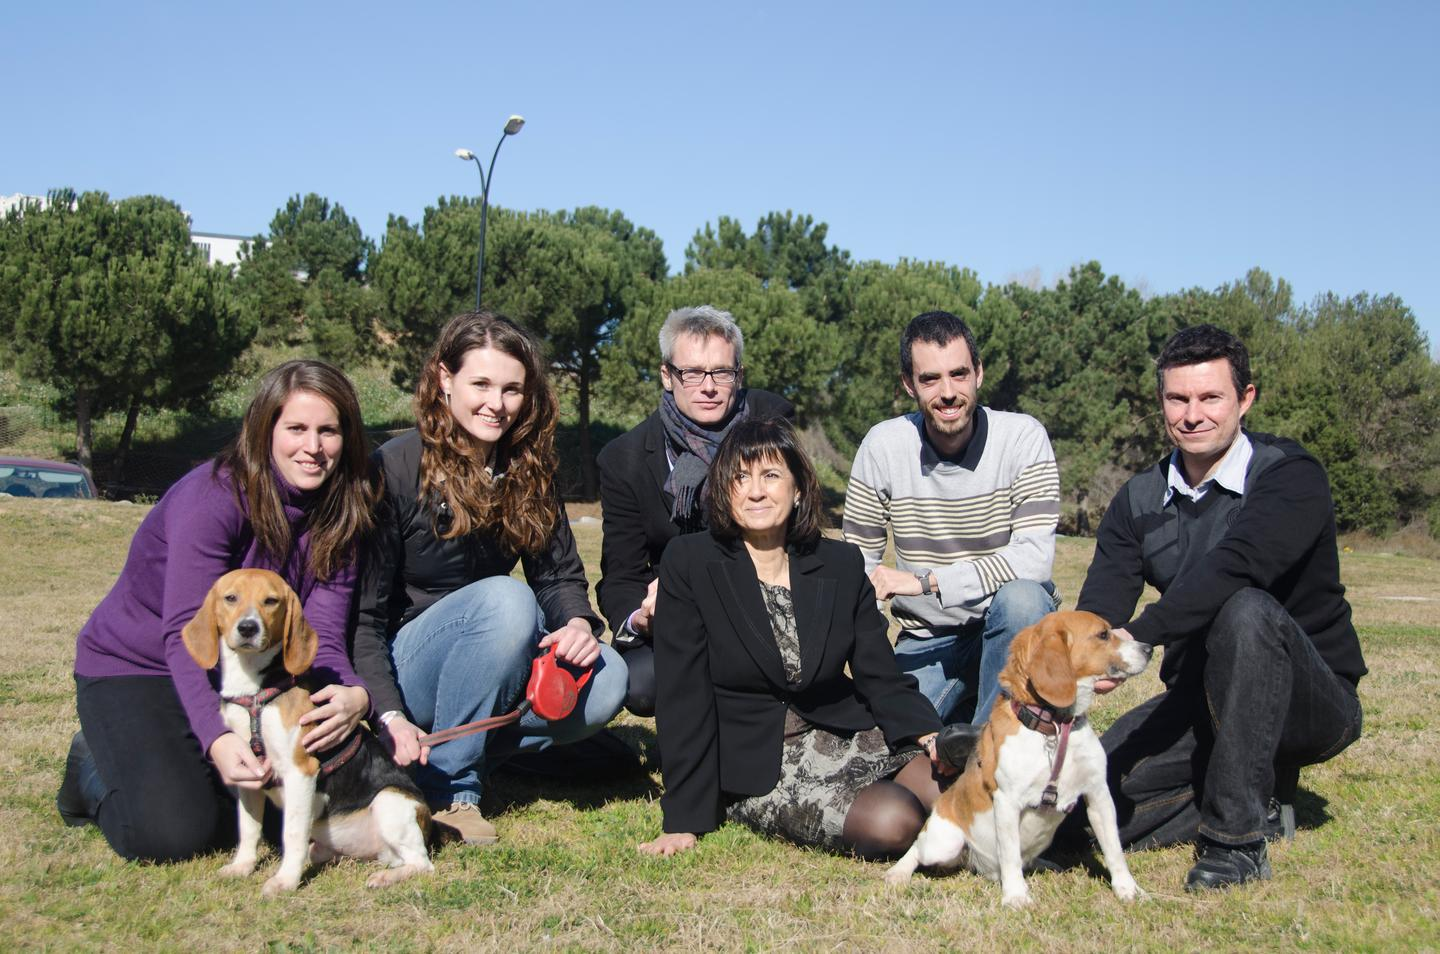 Led by Fàtima Bosch (fifth from left), a University of Barcelona research team has cured dogs of type 1 diabetes using gene therapy (Photo: UAB/Pierre Caufapé)